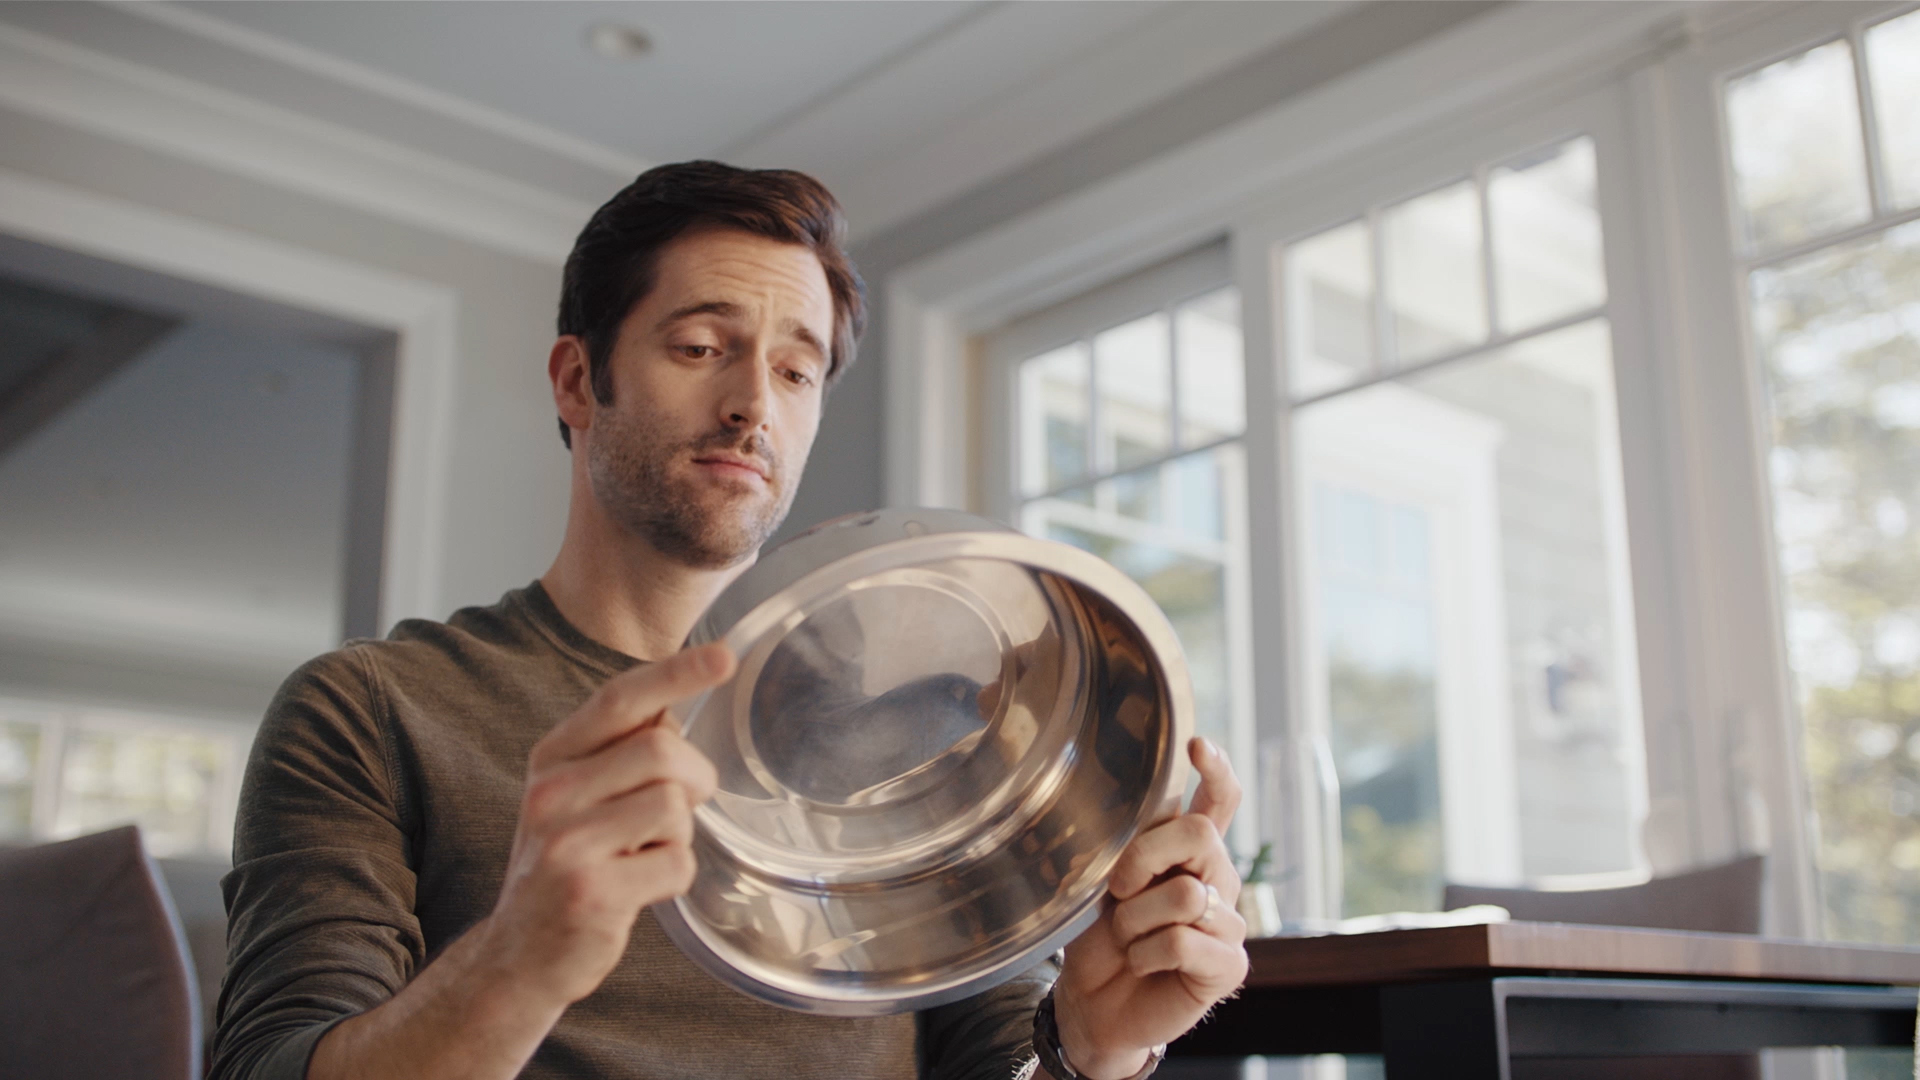 Man checking the underside of his pet's food bowl to see if it is safe.